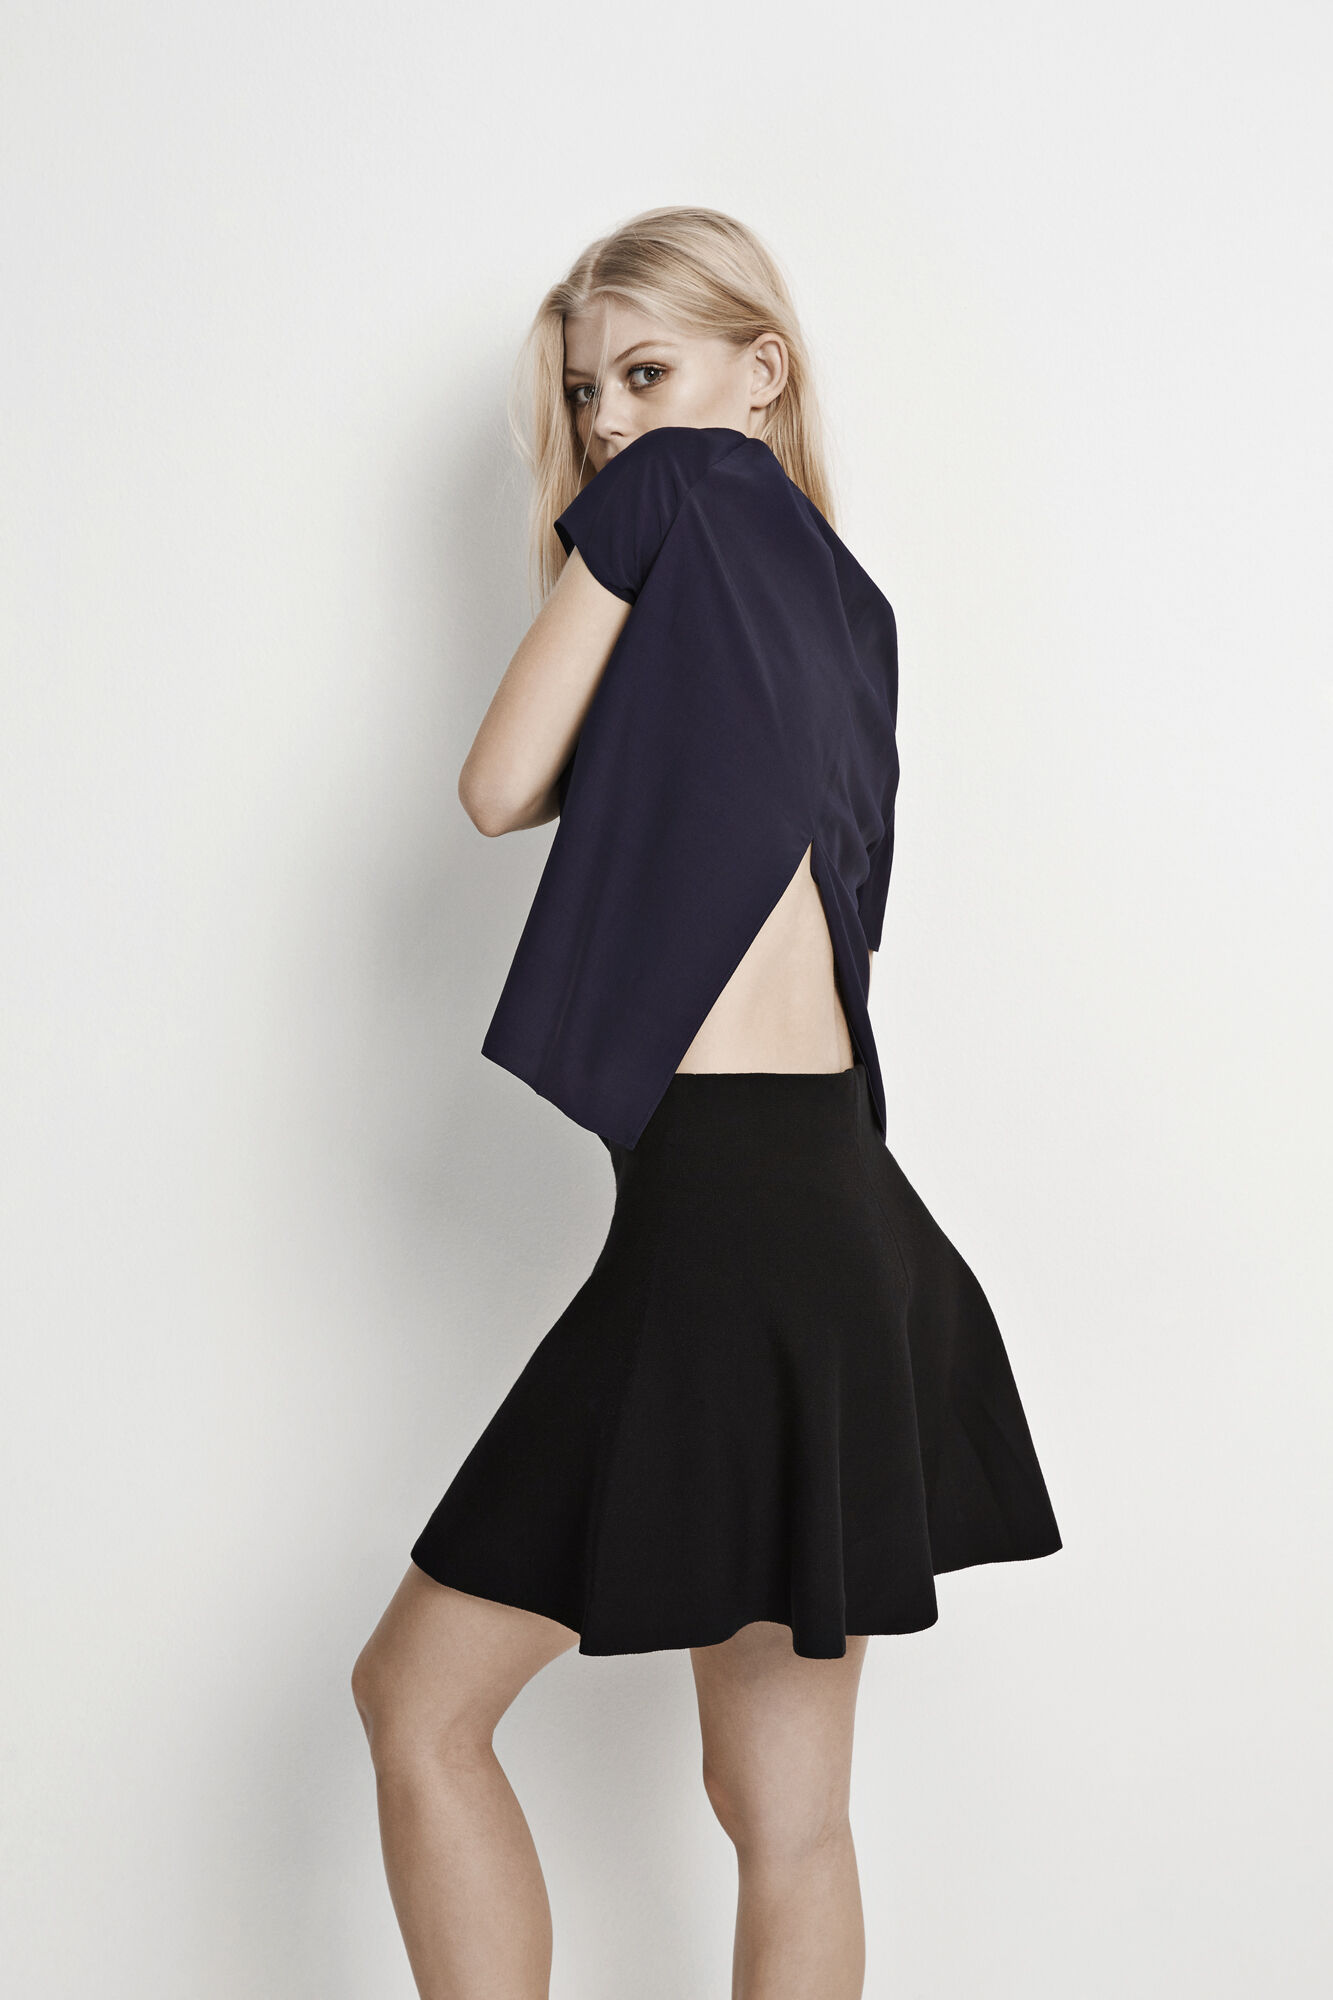 TIRE SS CONTRAST TOP 6431, NEW NAVY